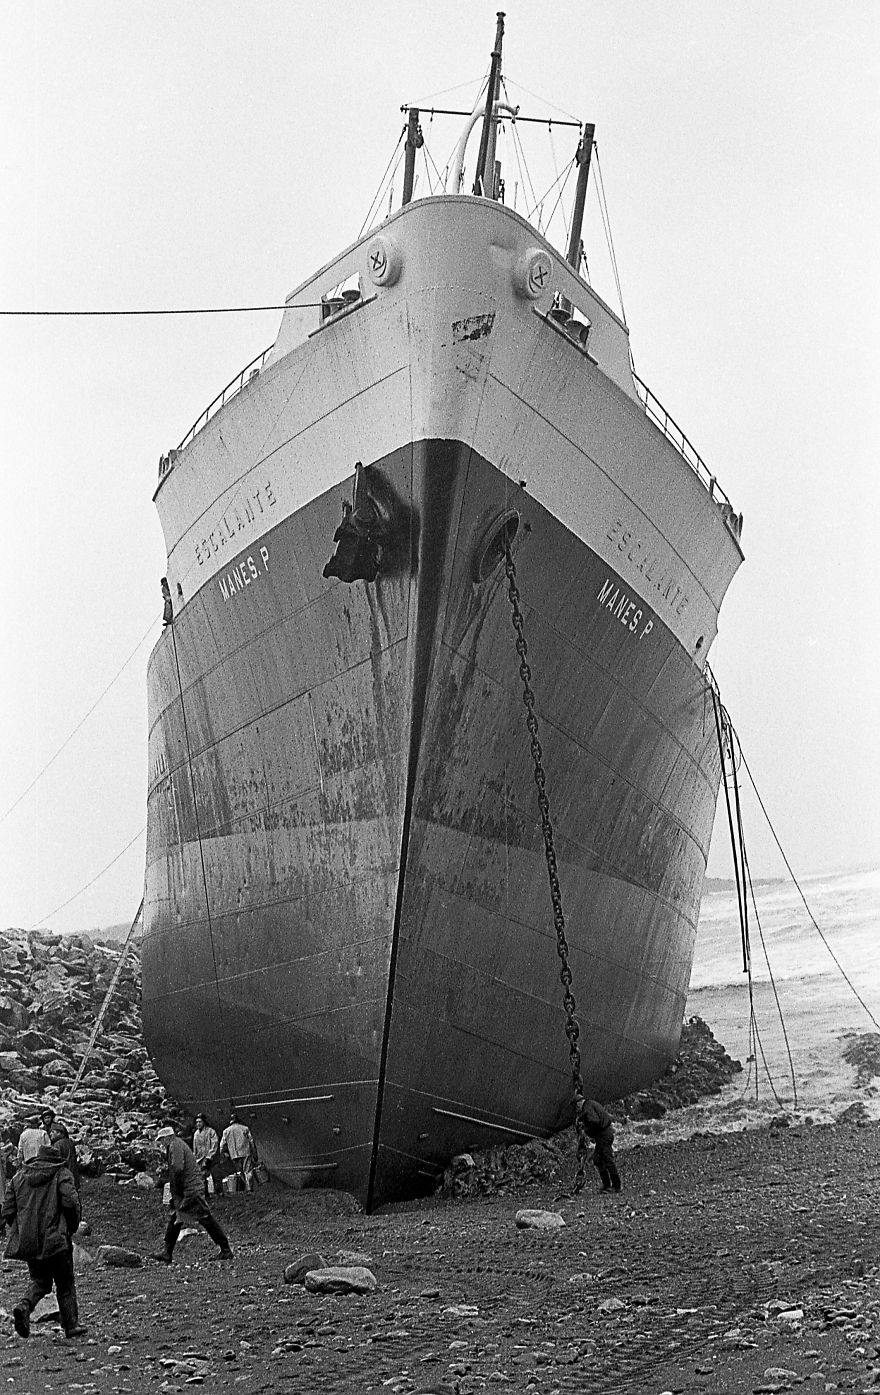 M.v. Manes P. Aground Saint John, N.b. Canada, February 1970. Photo By Bob Boudreau